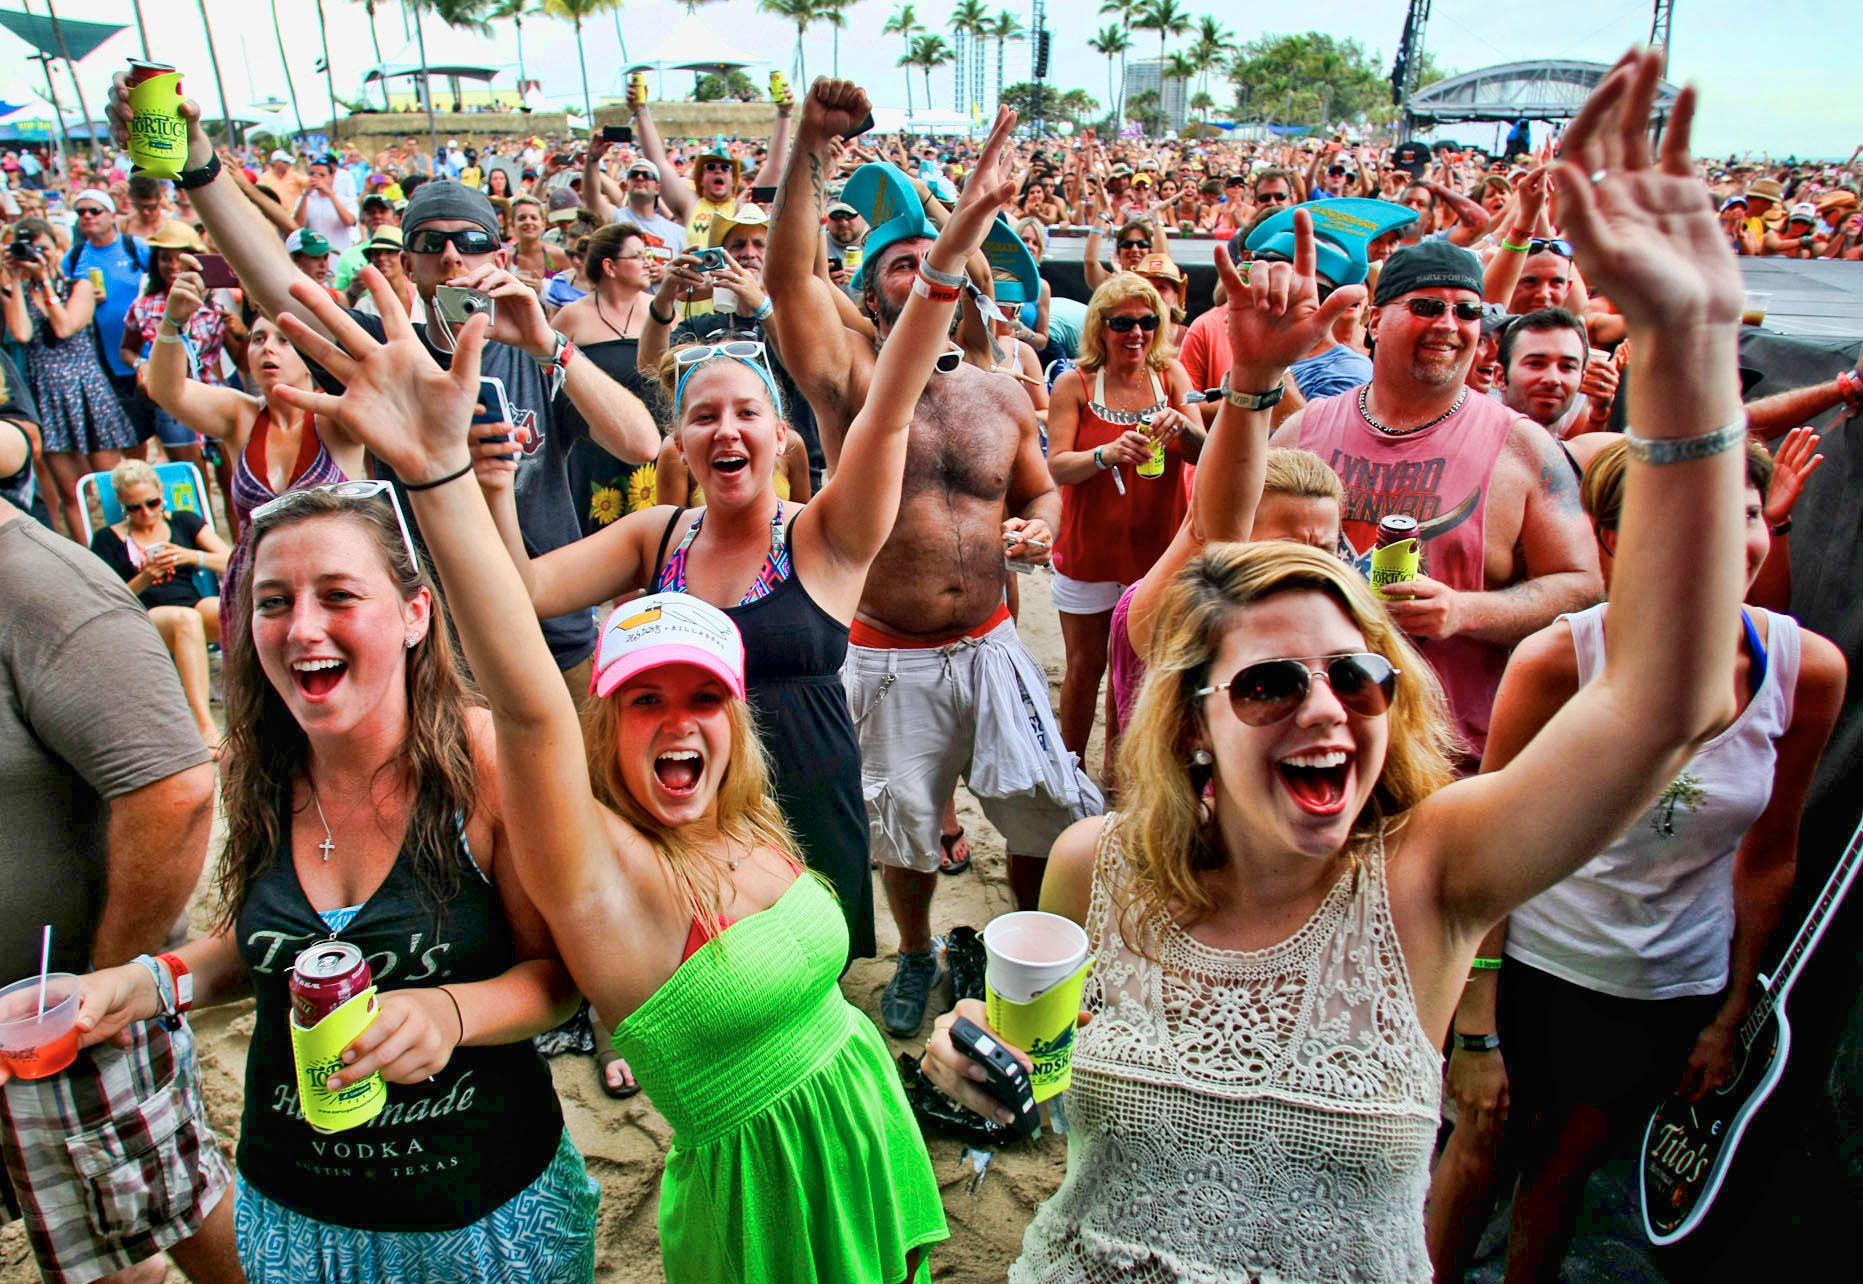 PHOTOS: 2013 Tortuga Music Festival - Just another day in paradise